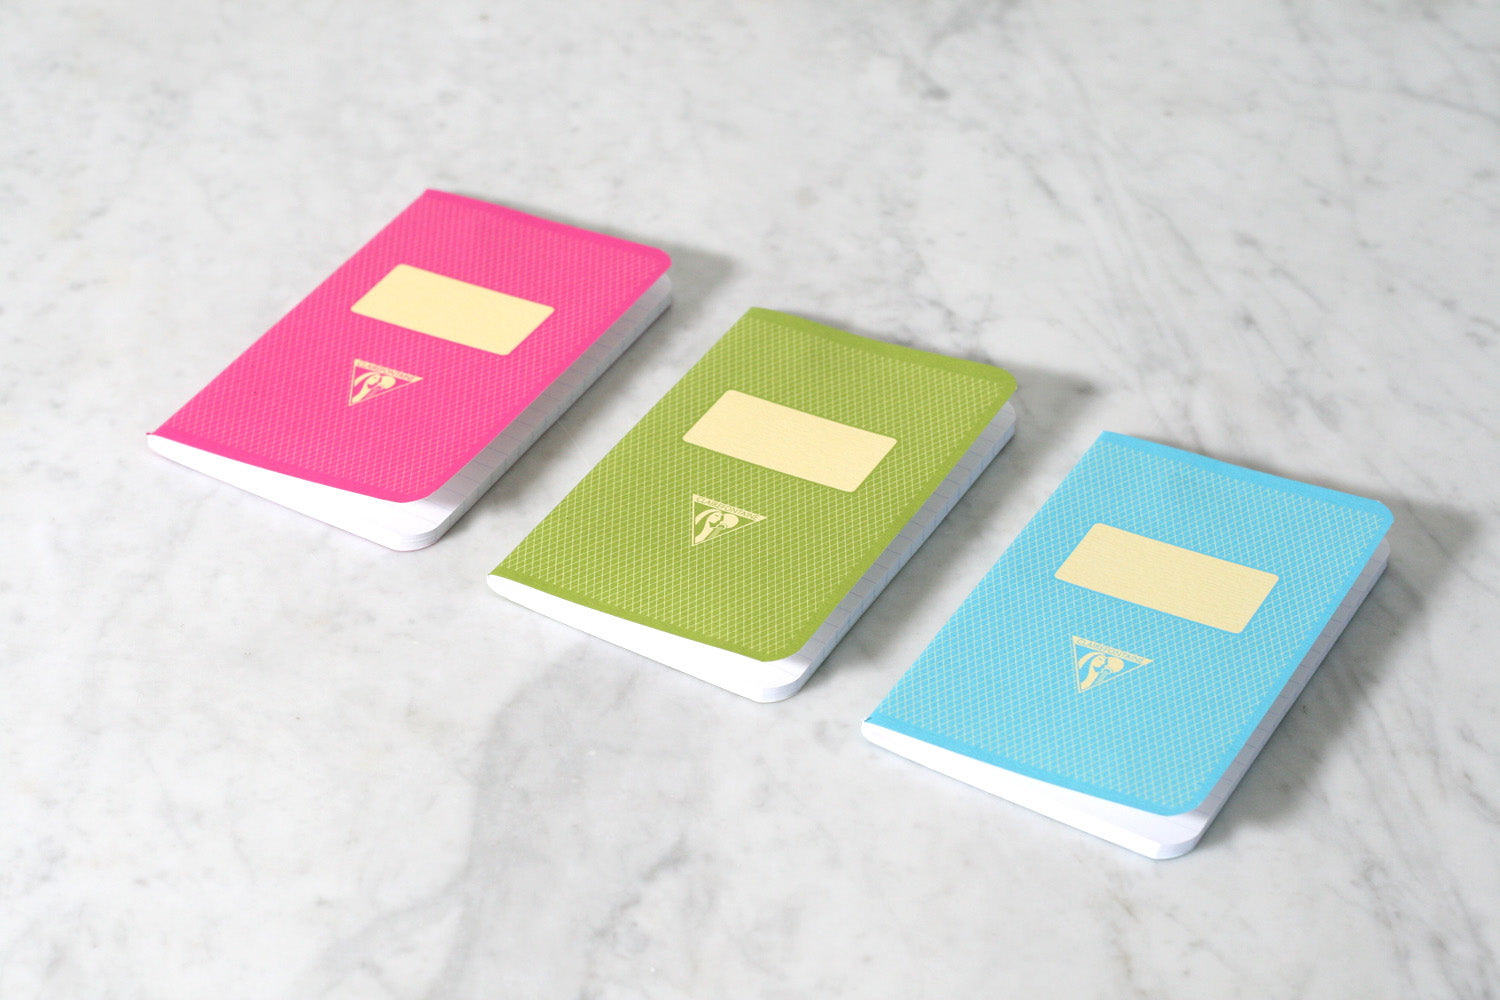 Clairefontaine 1951 Pocket Notebook, Lined